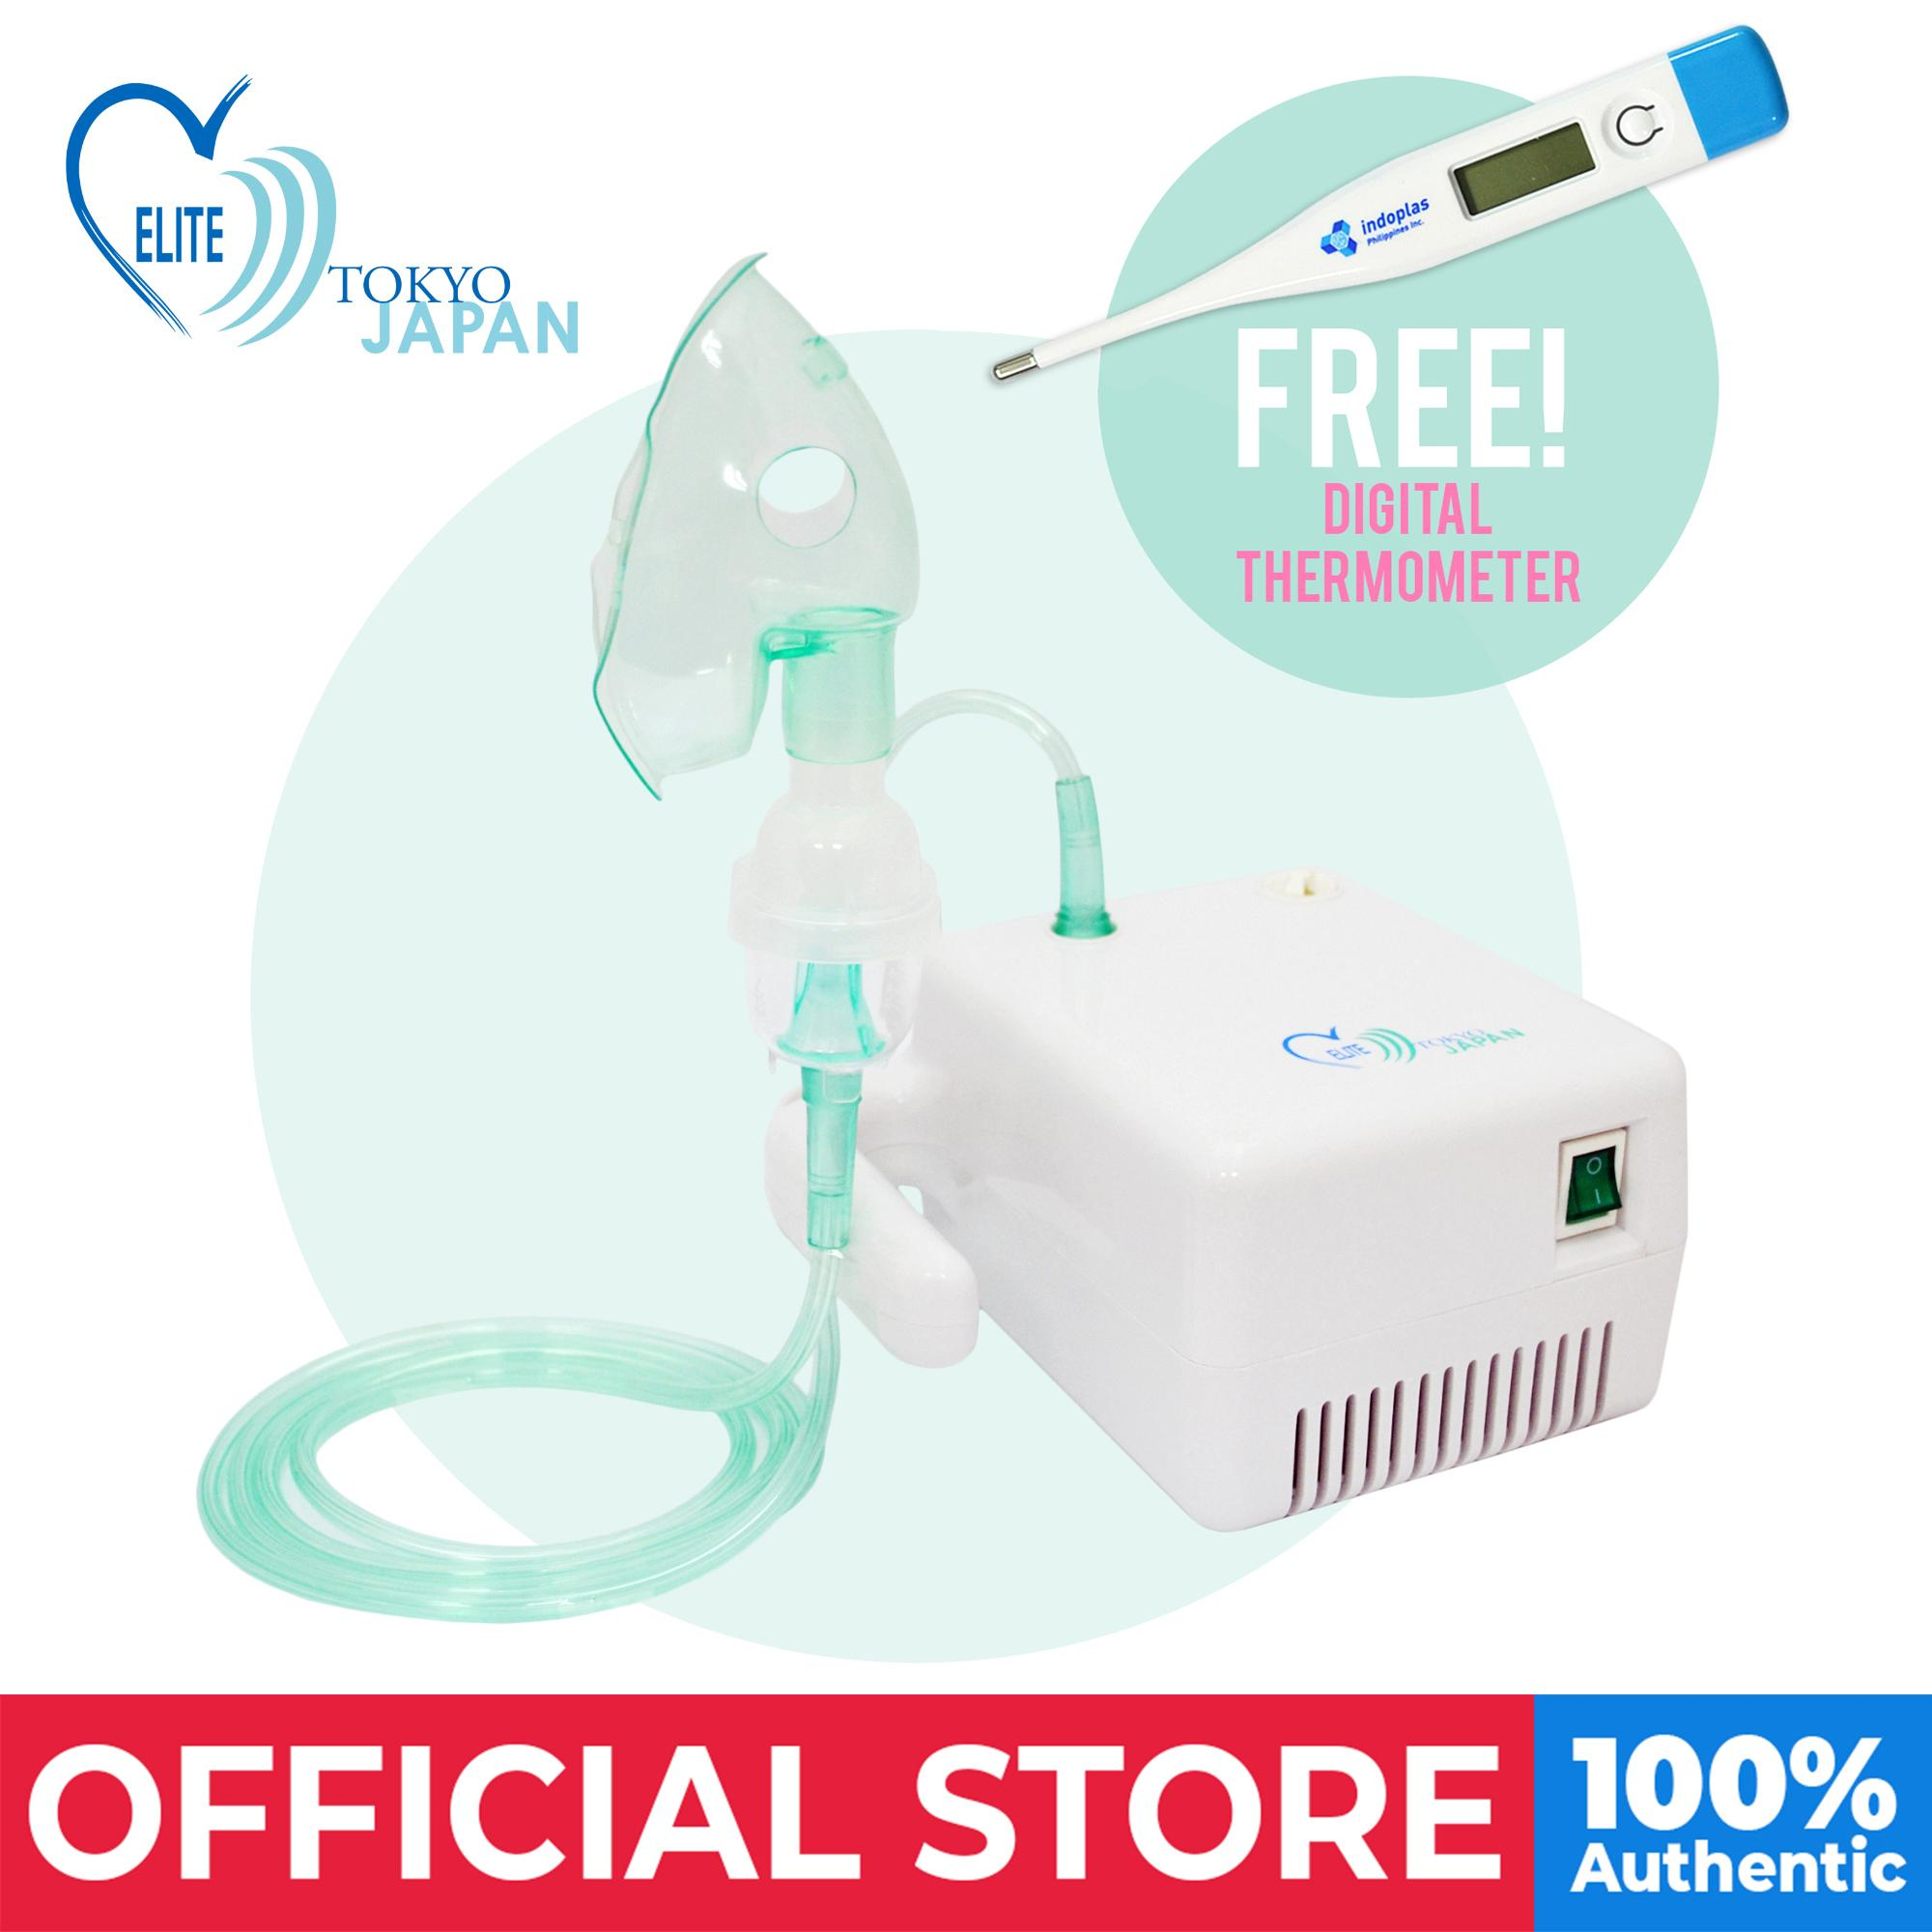 Elite Compact Nebulizer (w/ Complete Accessories) - Free Digital Thermometer By Medical Supplies Philippines.